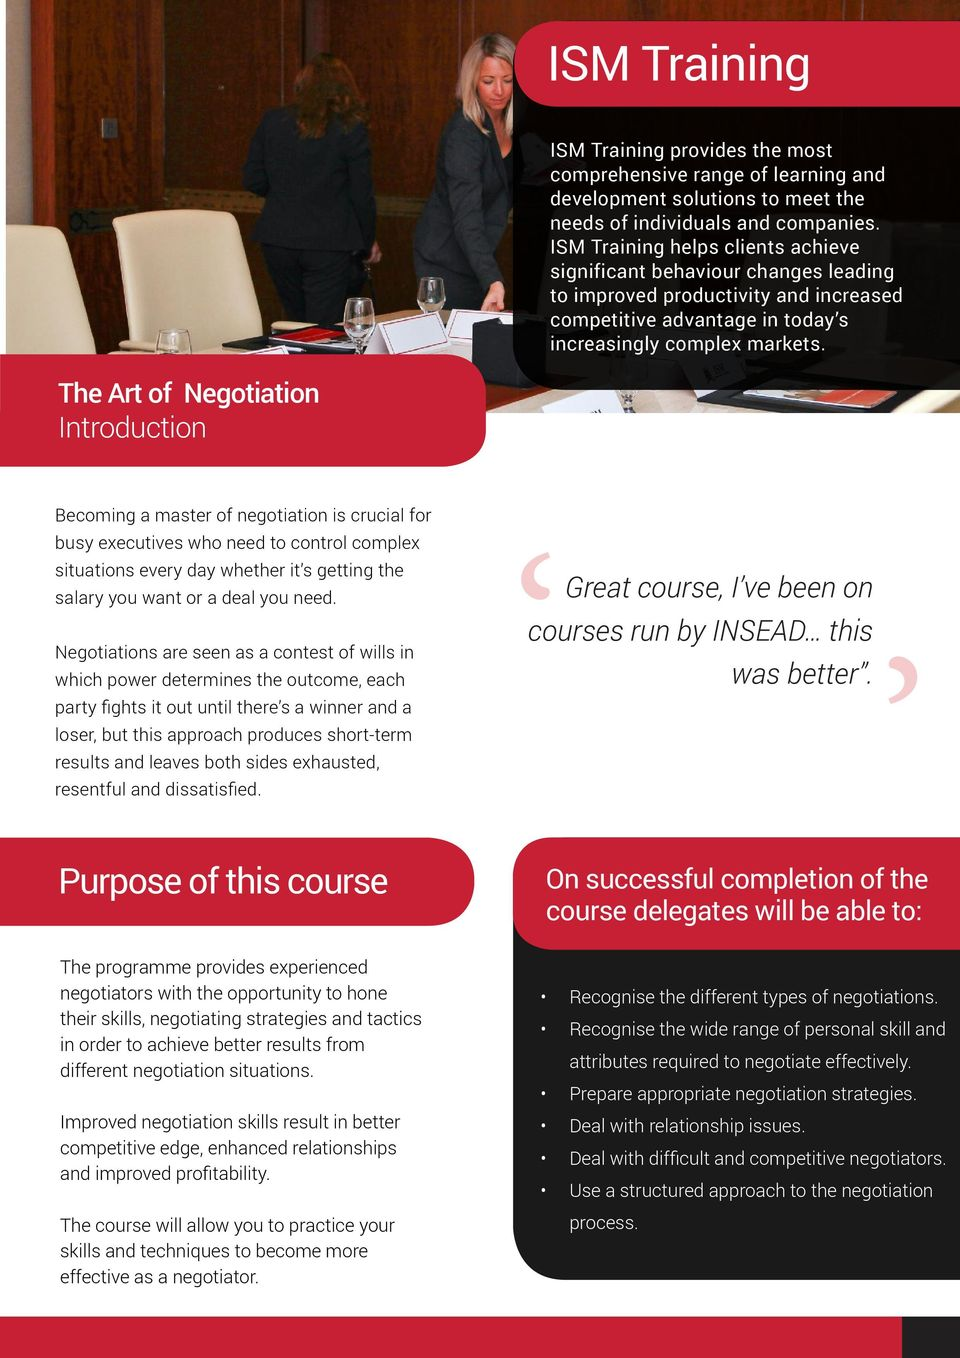 The Art of Negotiation Introduction Becoming a master of negotiation is crucial for busy executives who need to control complex situations every day whether it s getting the salary you want or a deal